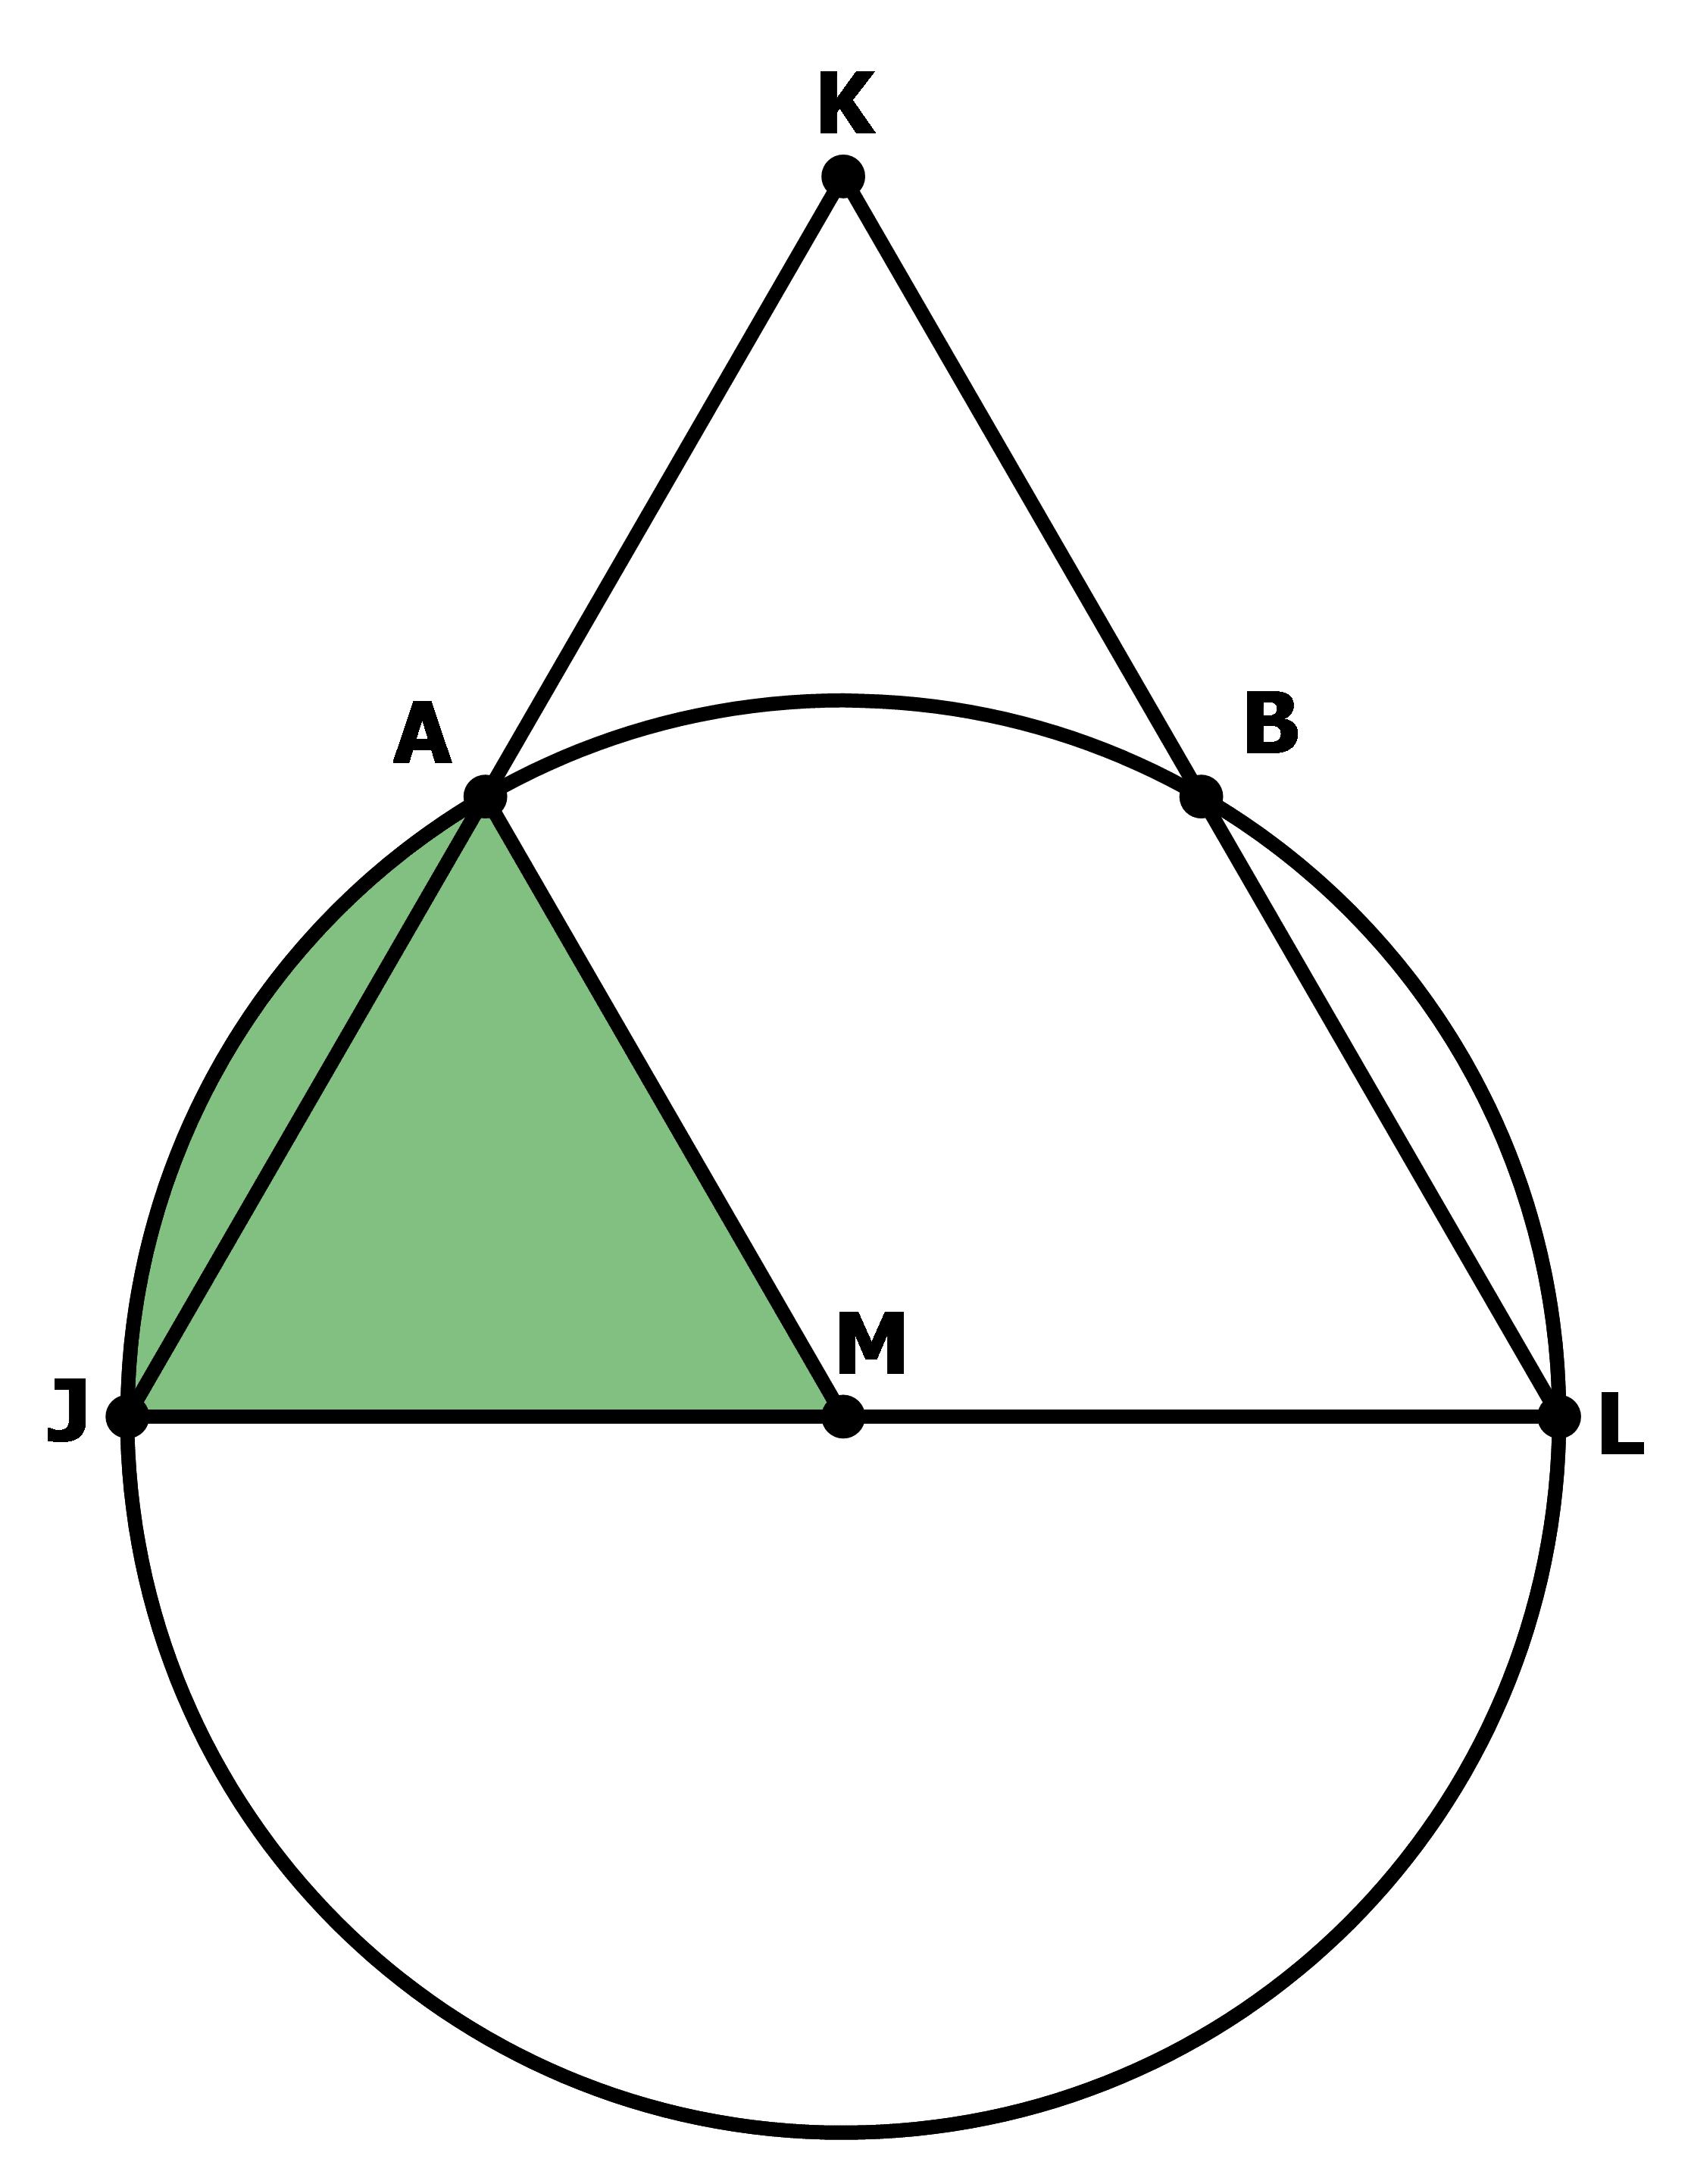 worksheet Area Circle circle problems on the gmat magoosh blog angle at m is 60ao so this one sixth of area circle